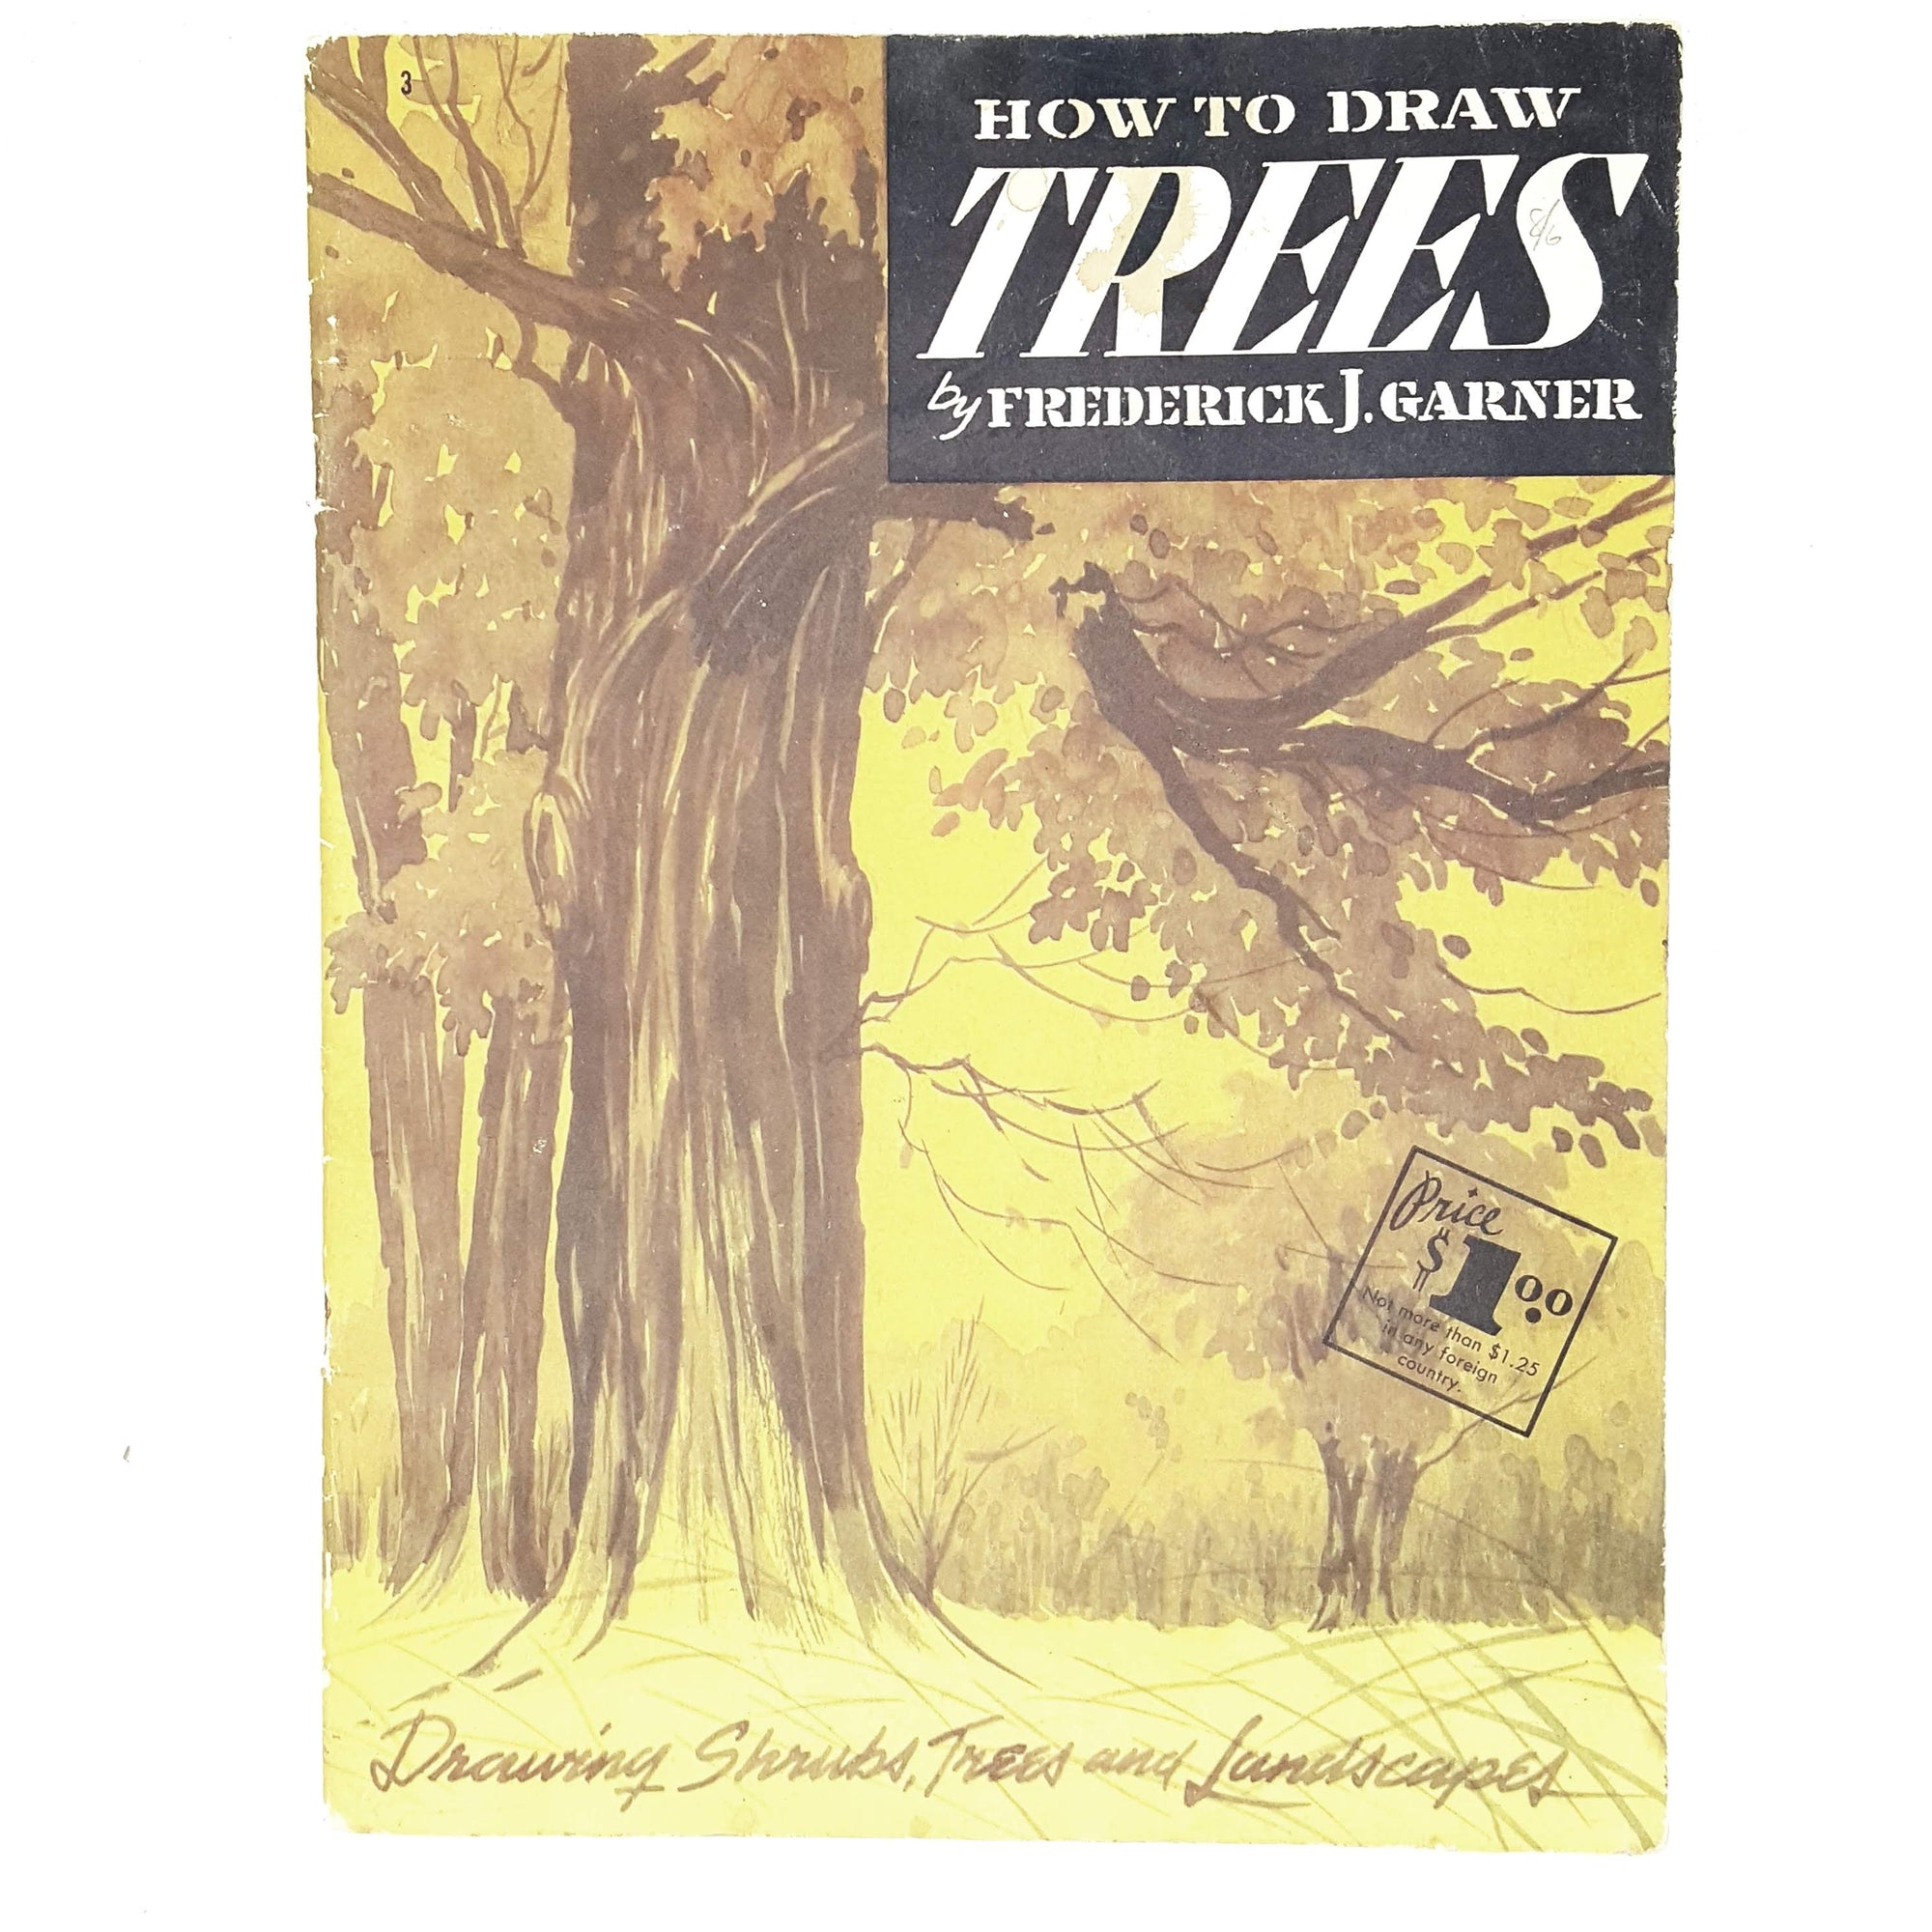 Vintage Arts How to Draw Trees by Frederick J. Garner 1965